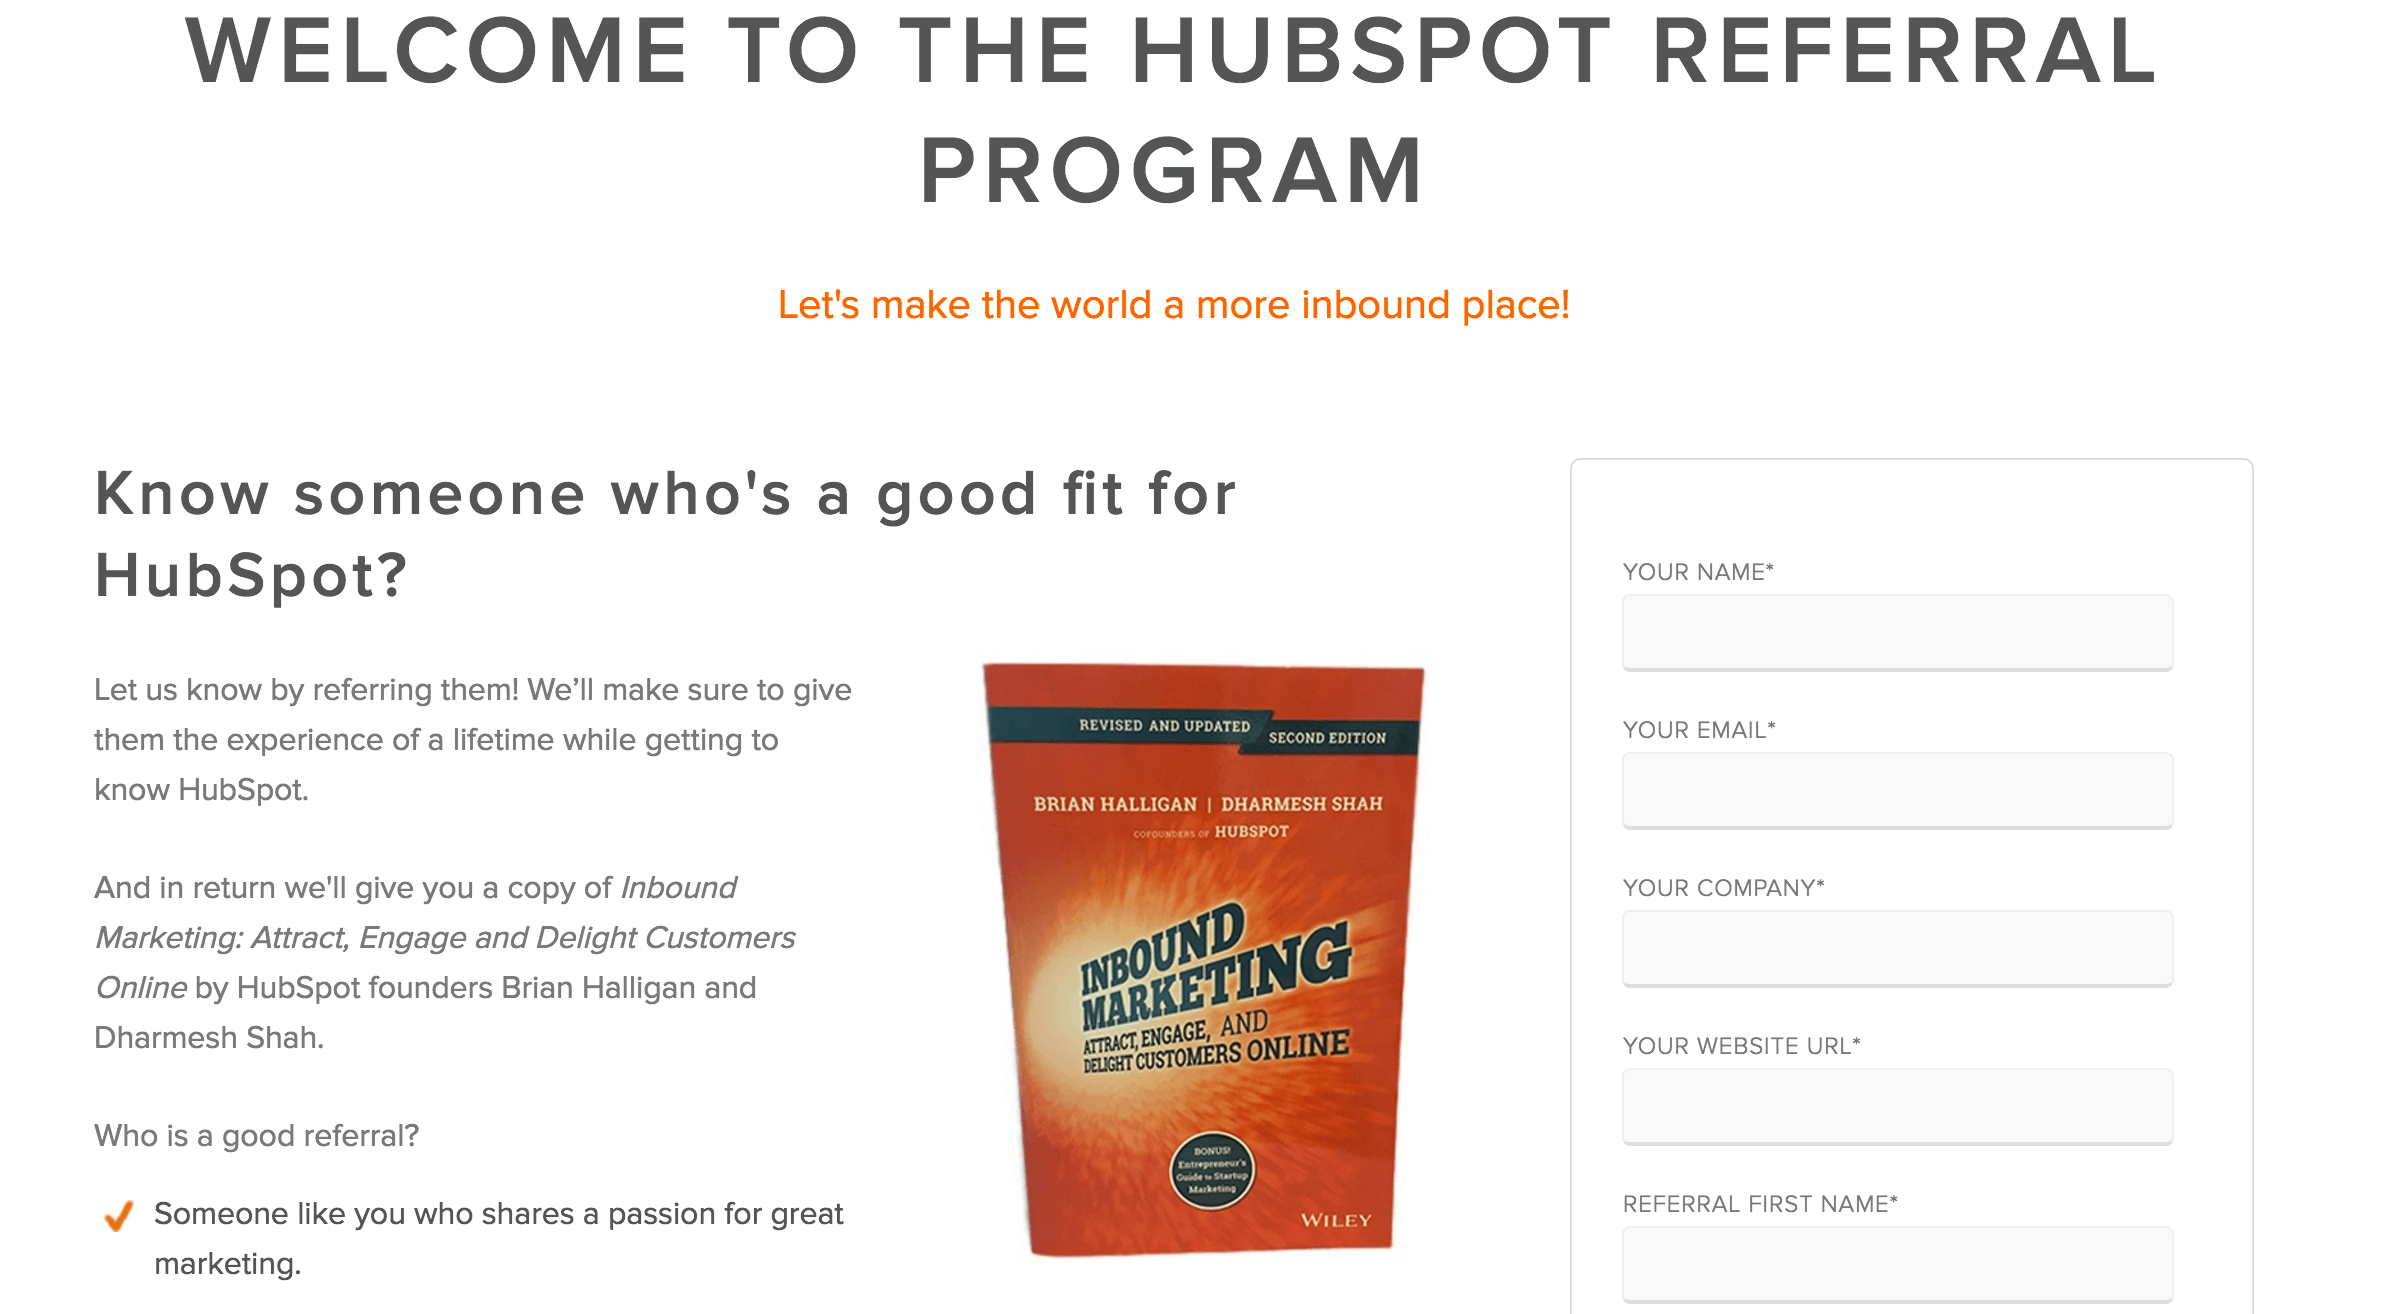 39-hubspot-referral-program